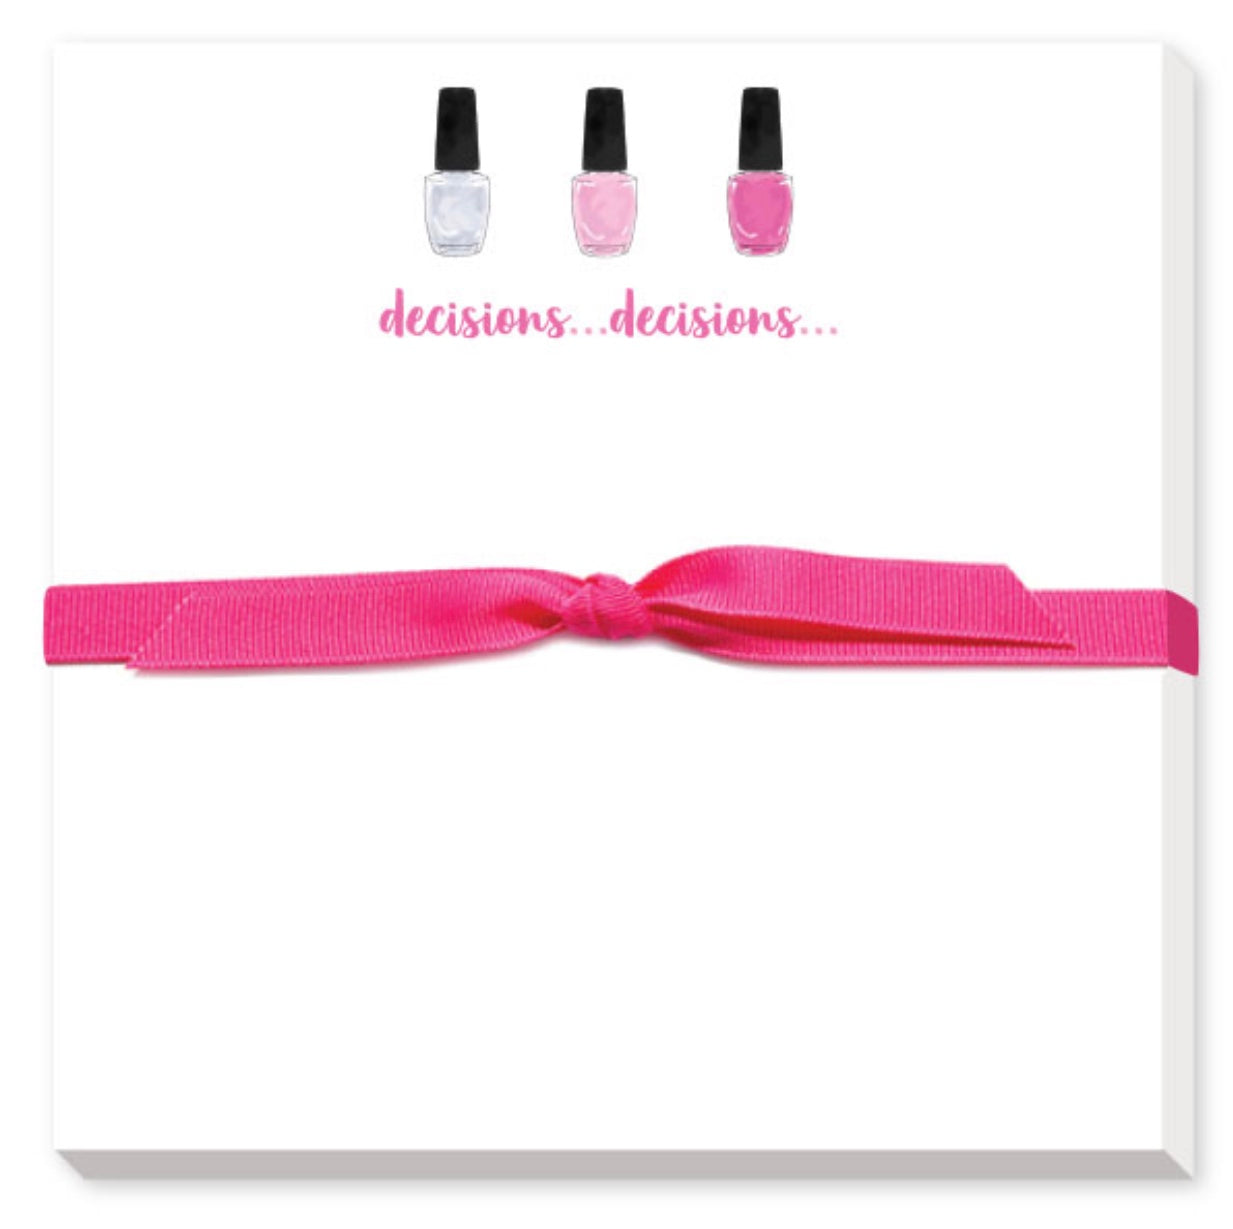 decisions decisions notepad with lipstick for all of your notes